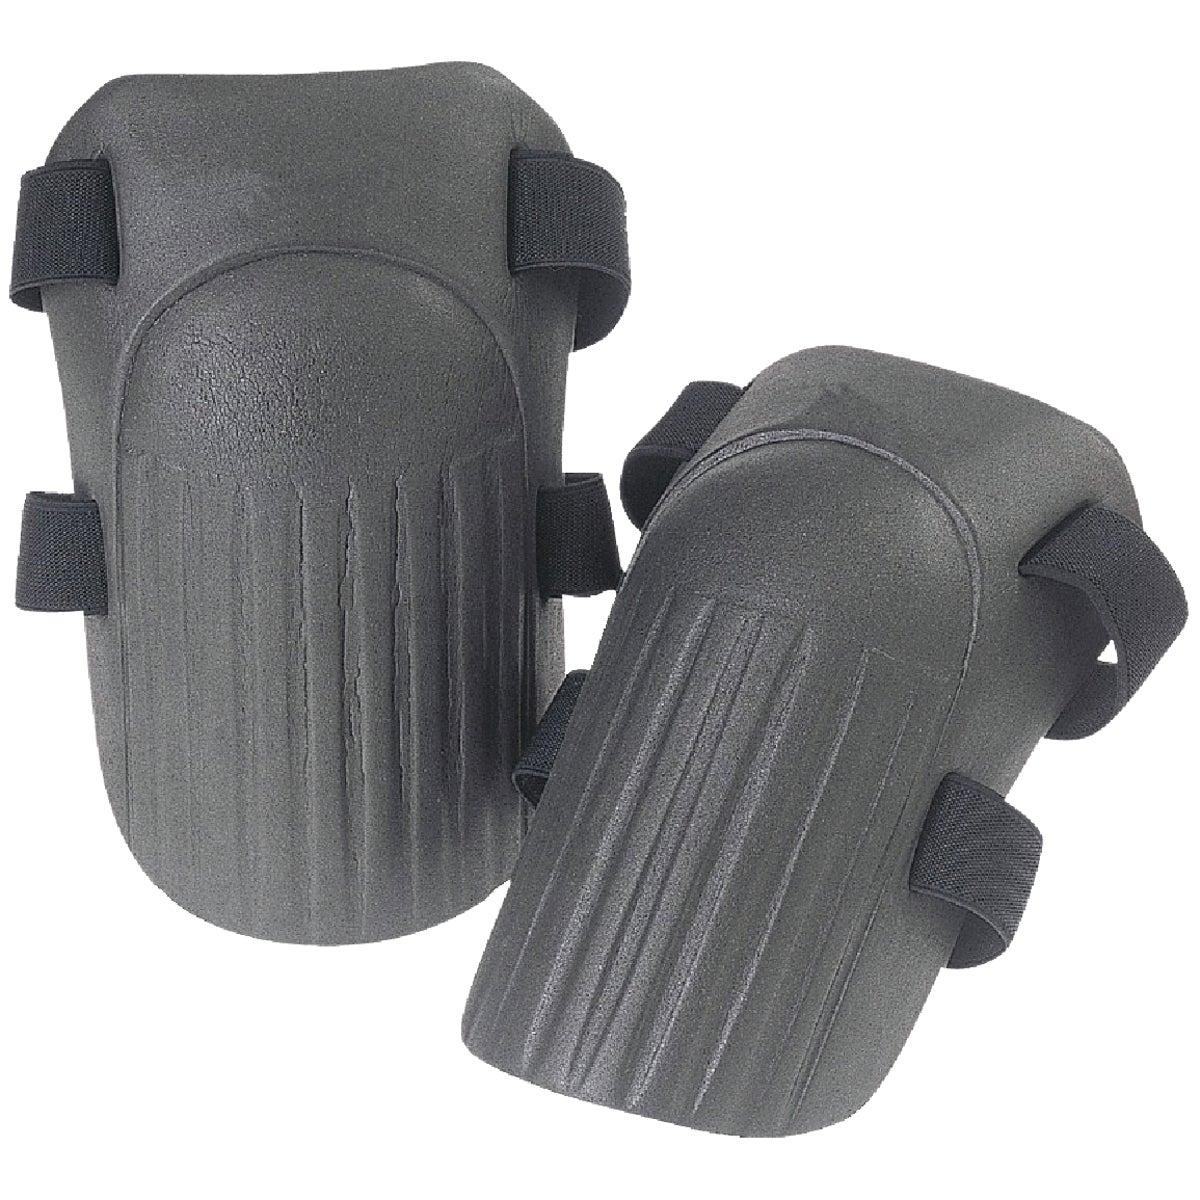 DURABLE FOAM KNEEPADS - V229 by Custom Leathercraft